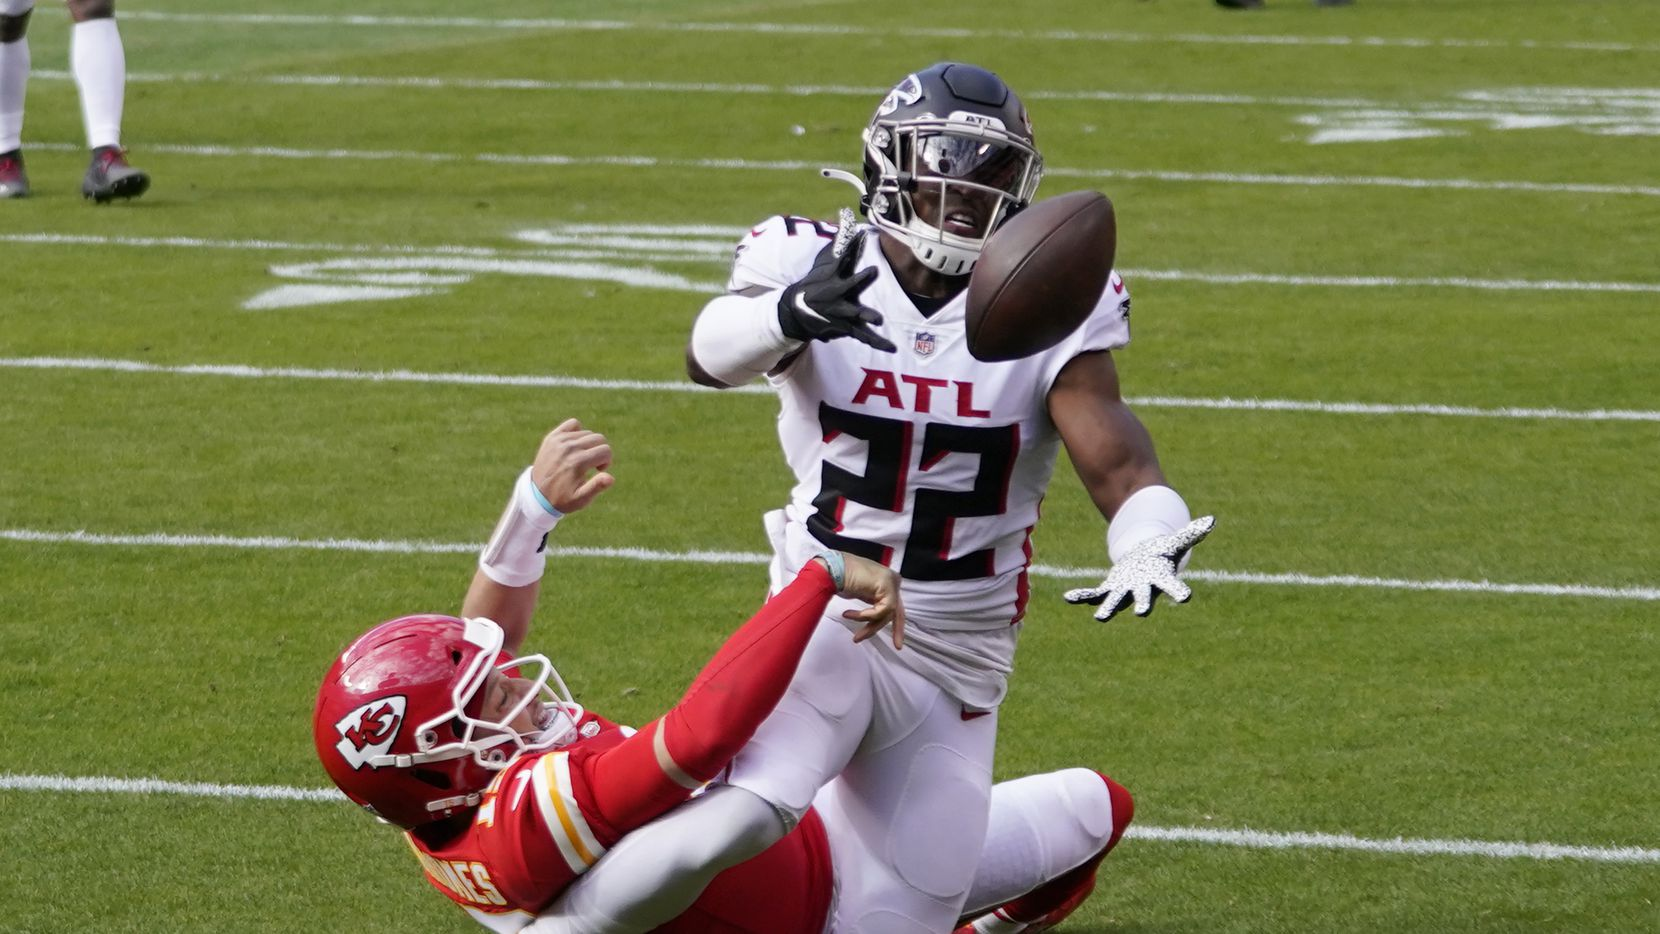 A pass intended for Kansas City Chiefs quarterback Patrick Mahomes is intercepted by Atlanta Falcons safety Keanu Neal during the first half an NFL football game, Sunday, Dec. 27, 2020, in Kansas City.